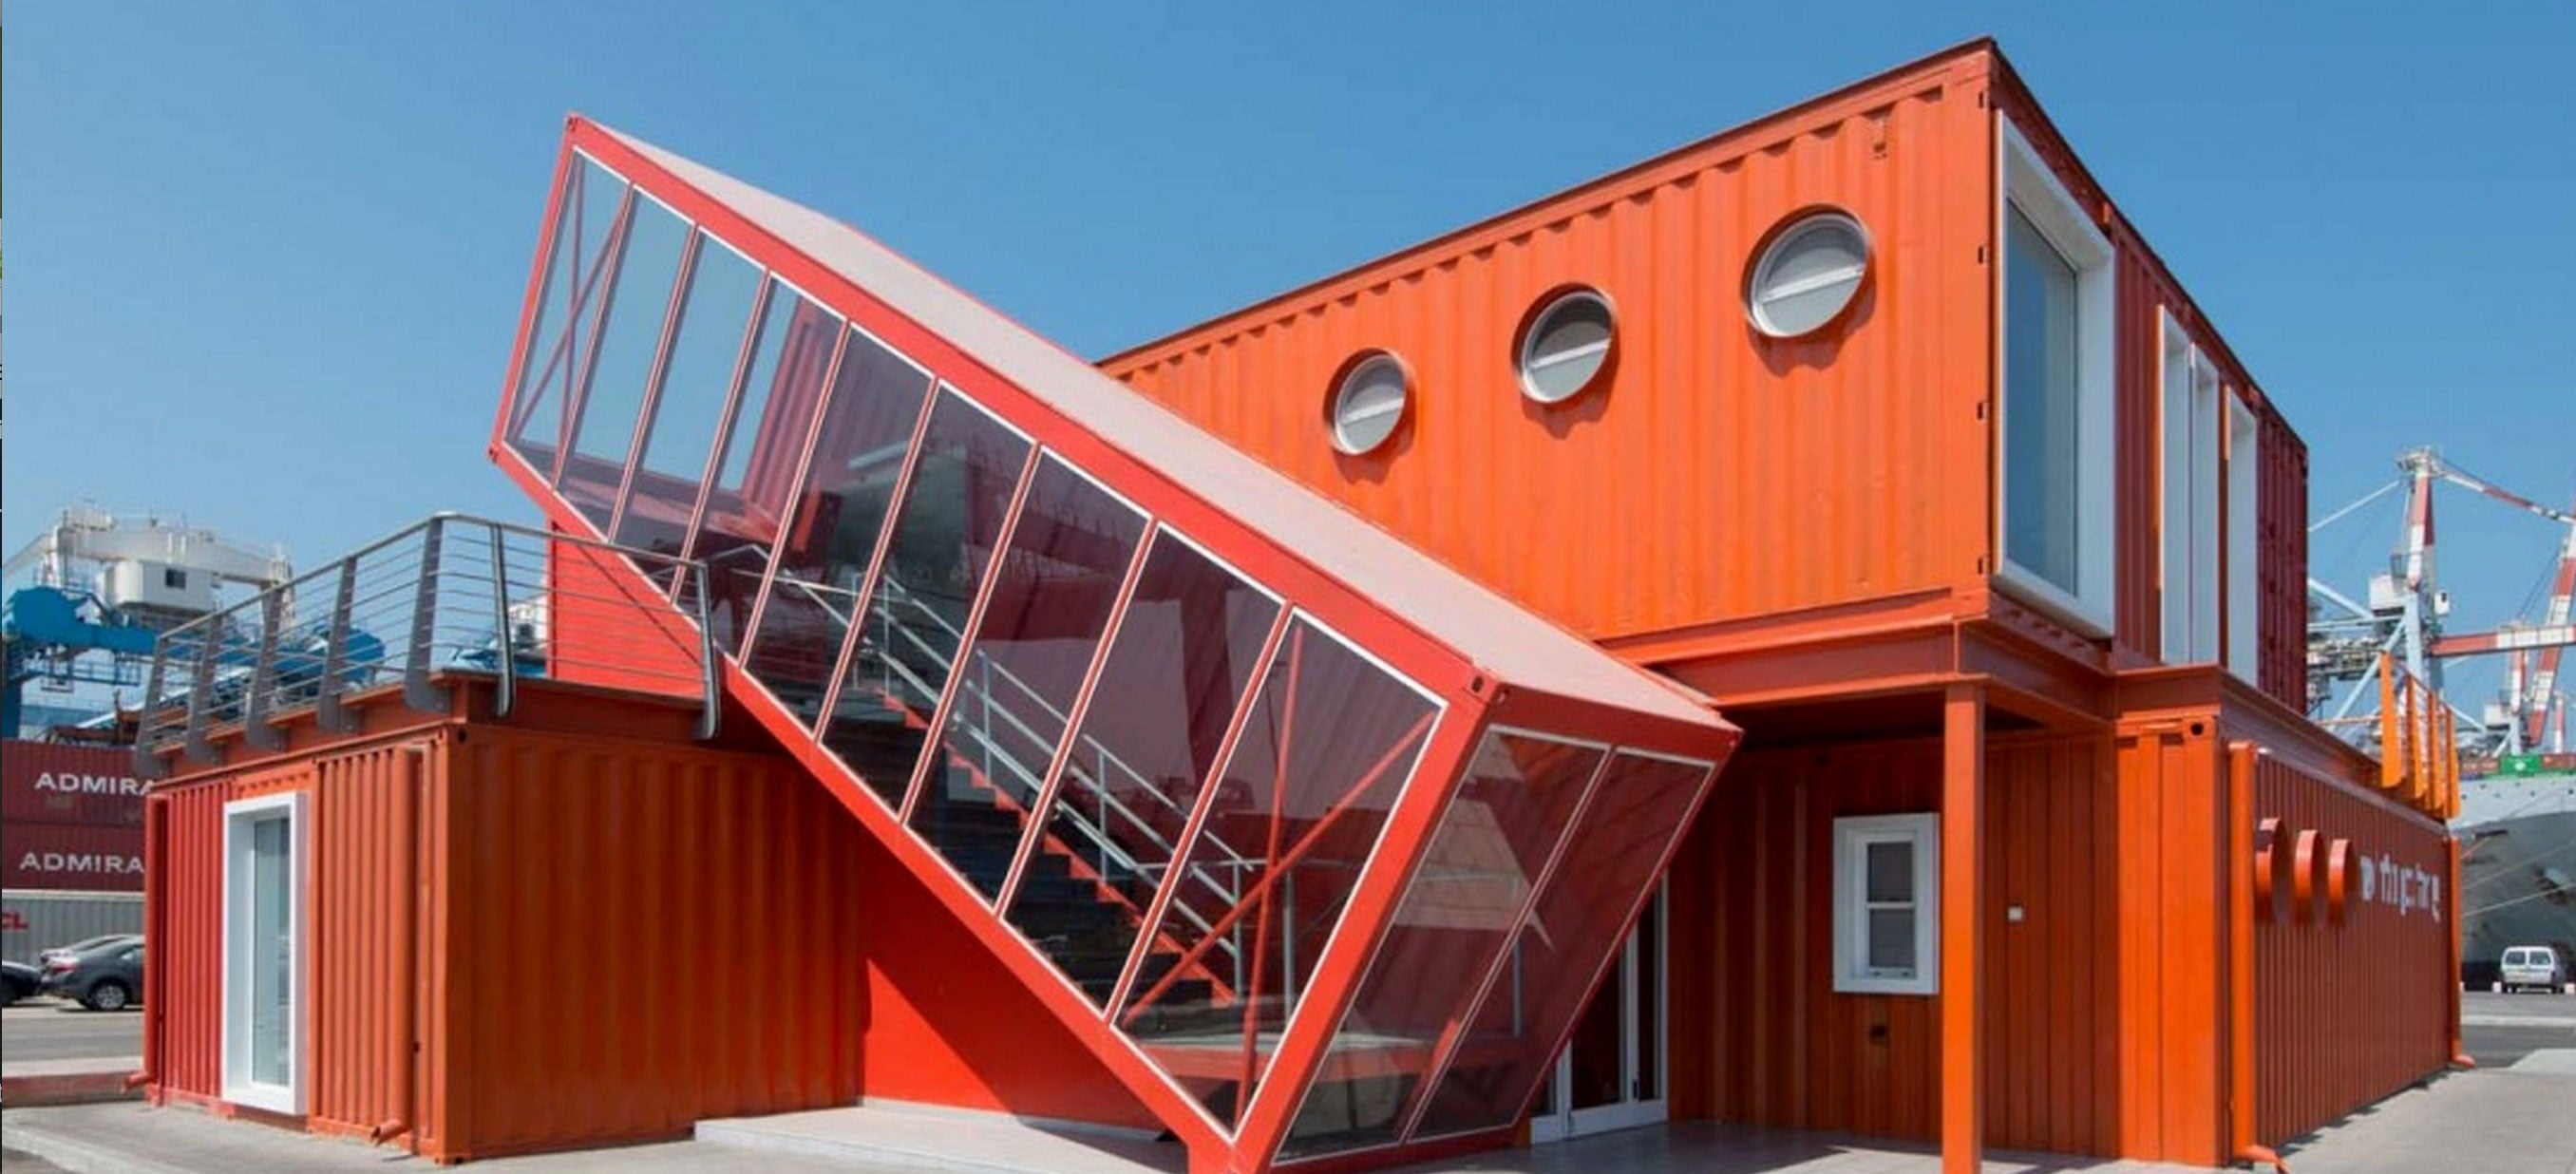 Shipping Container Offices Are Right At Home On An